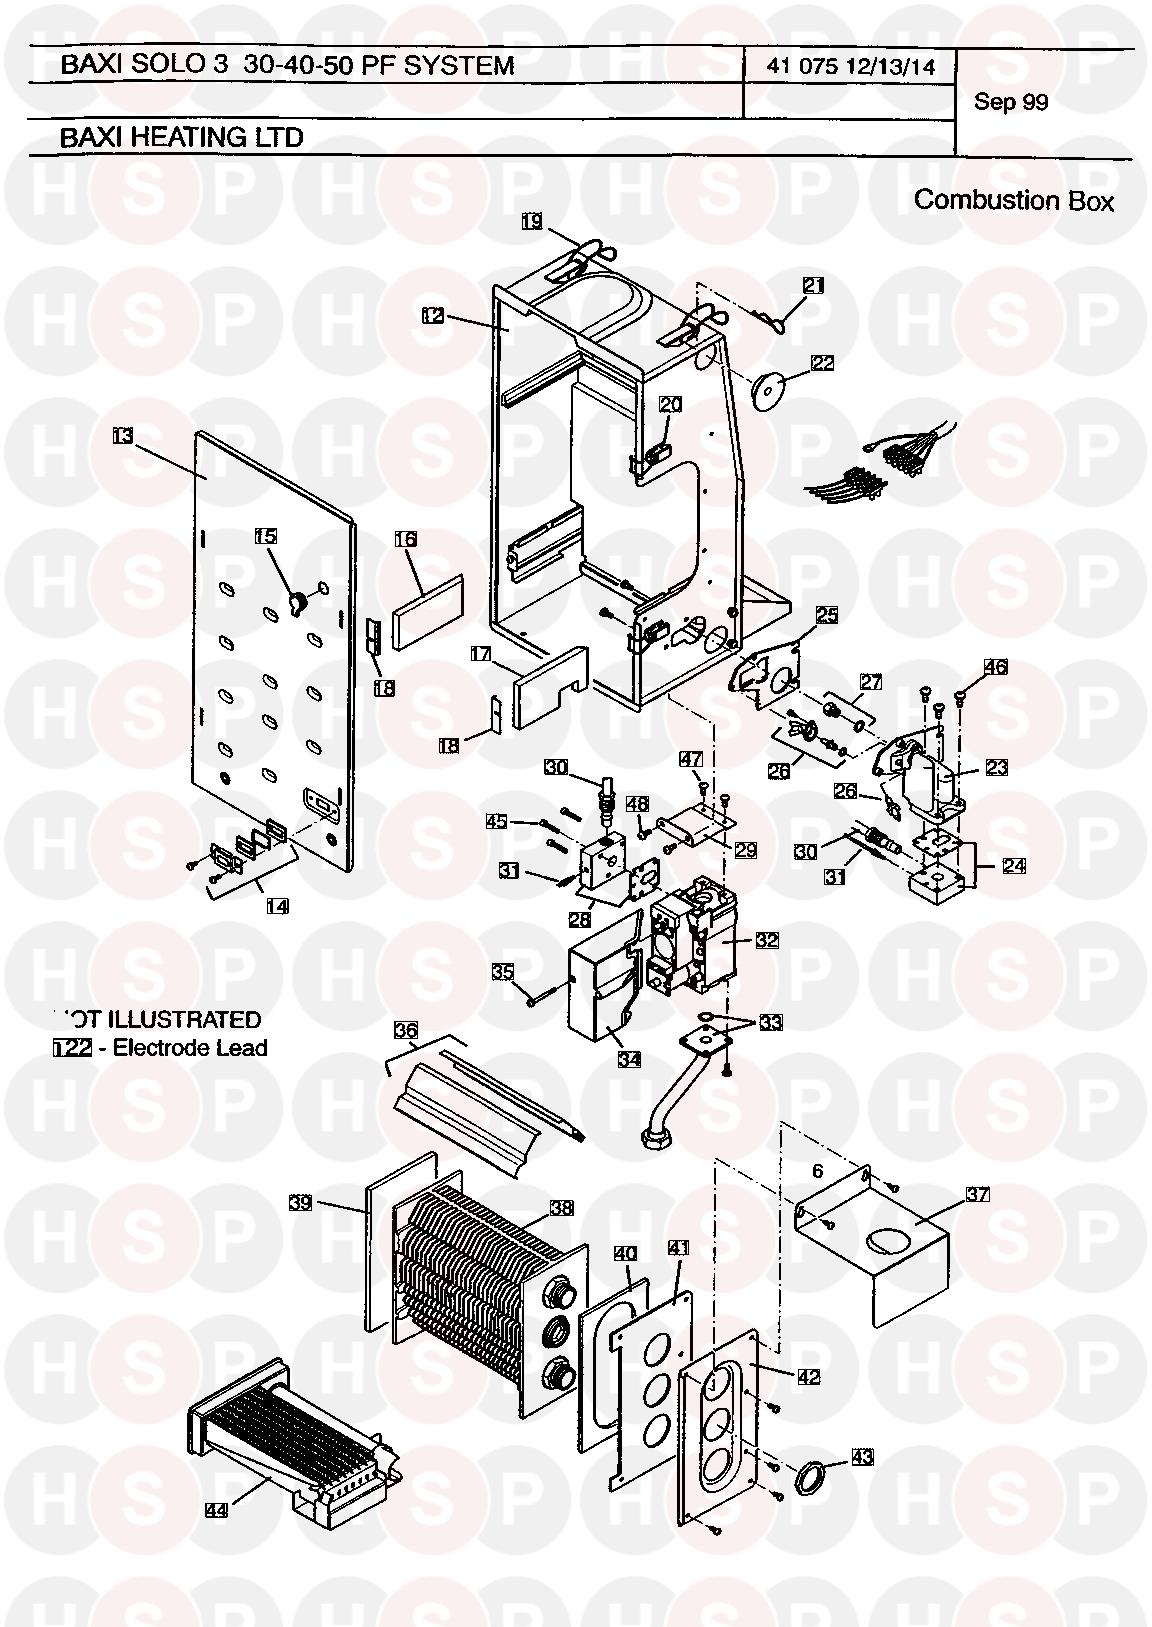 baxi 3 pf 30 system  combustion box  diagram